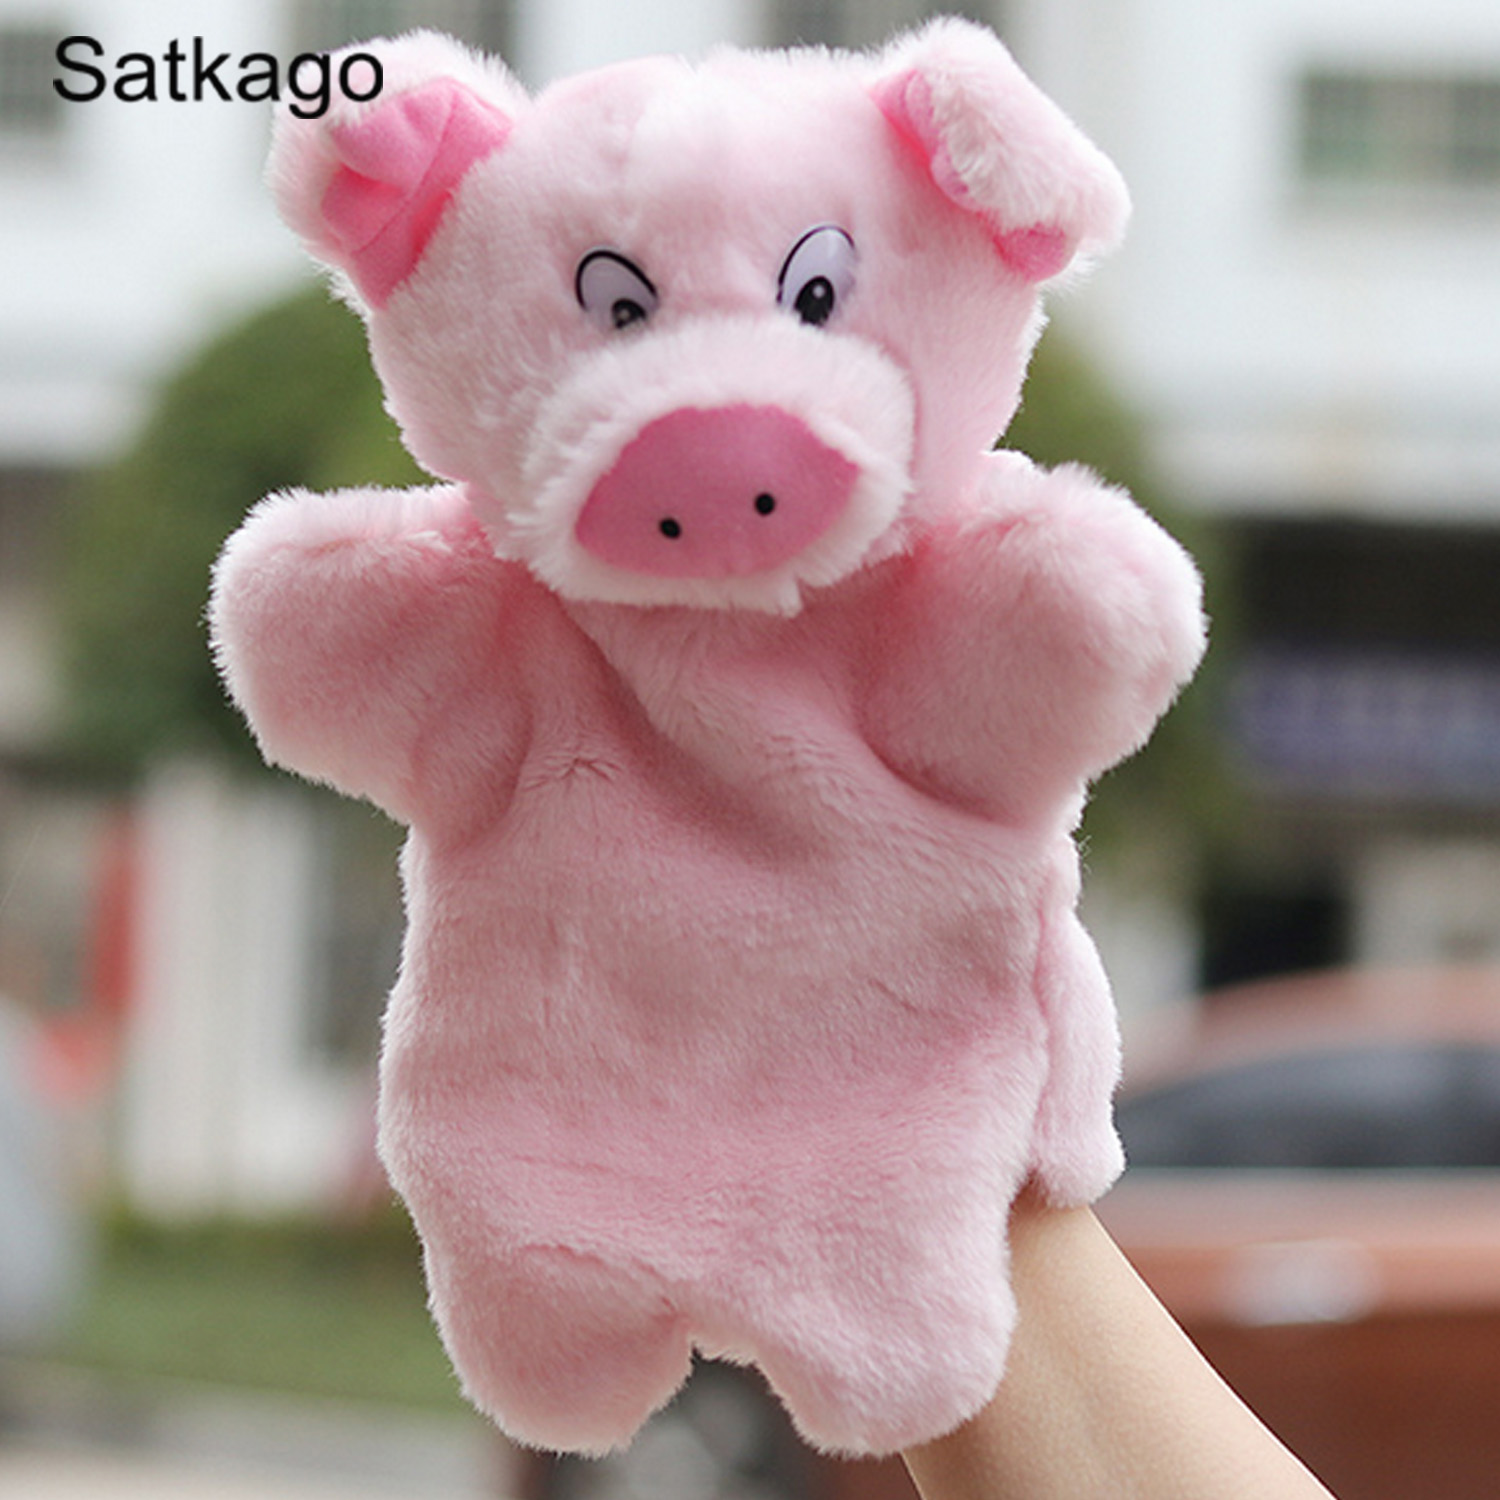 Satkago Cute Kawaii Pig Hand Puppets Soft Plush Hand Figures Cartoon Animal Toys Doll Baby Kids Children Educational Toys Pink